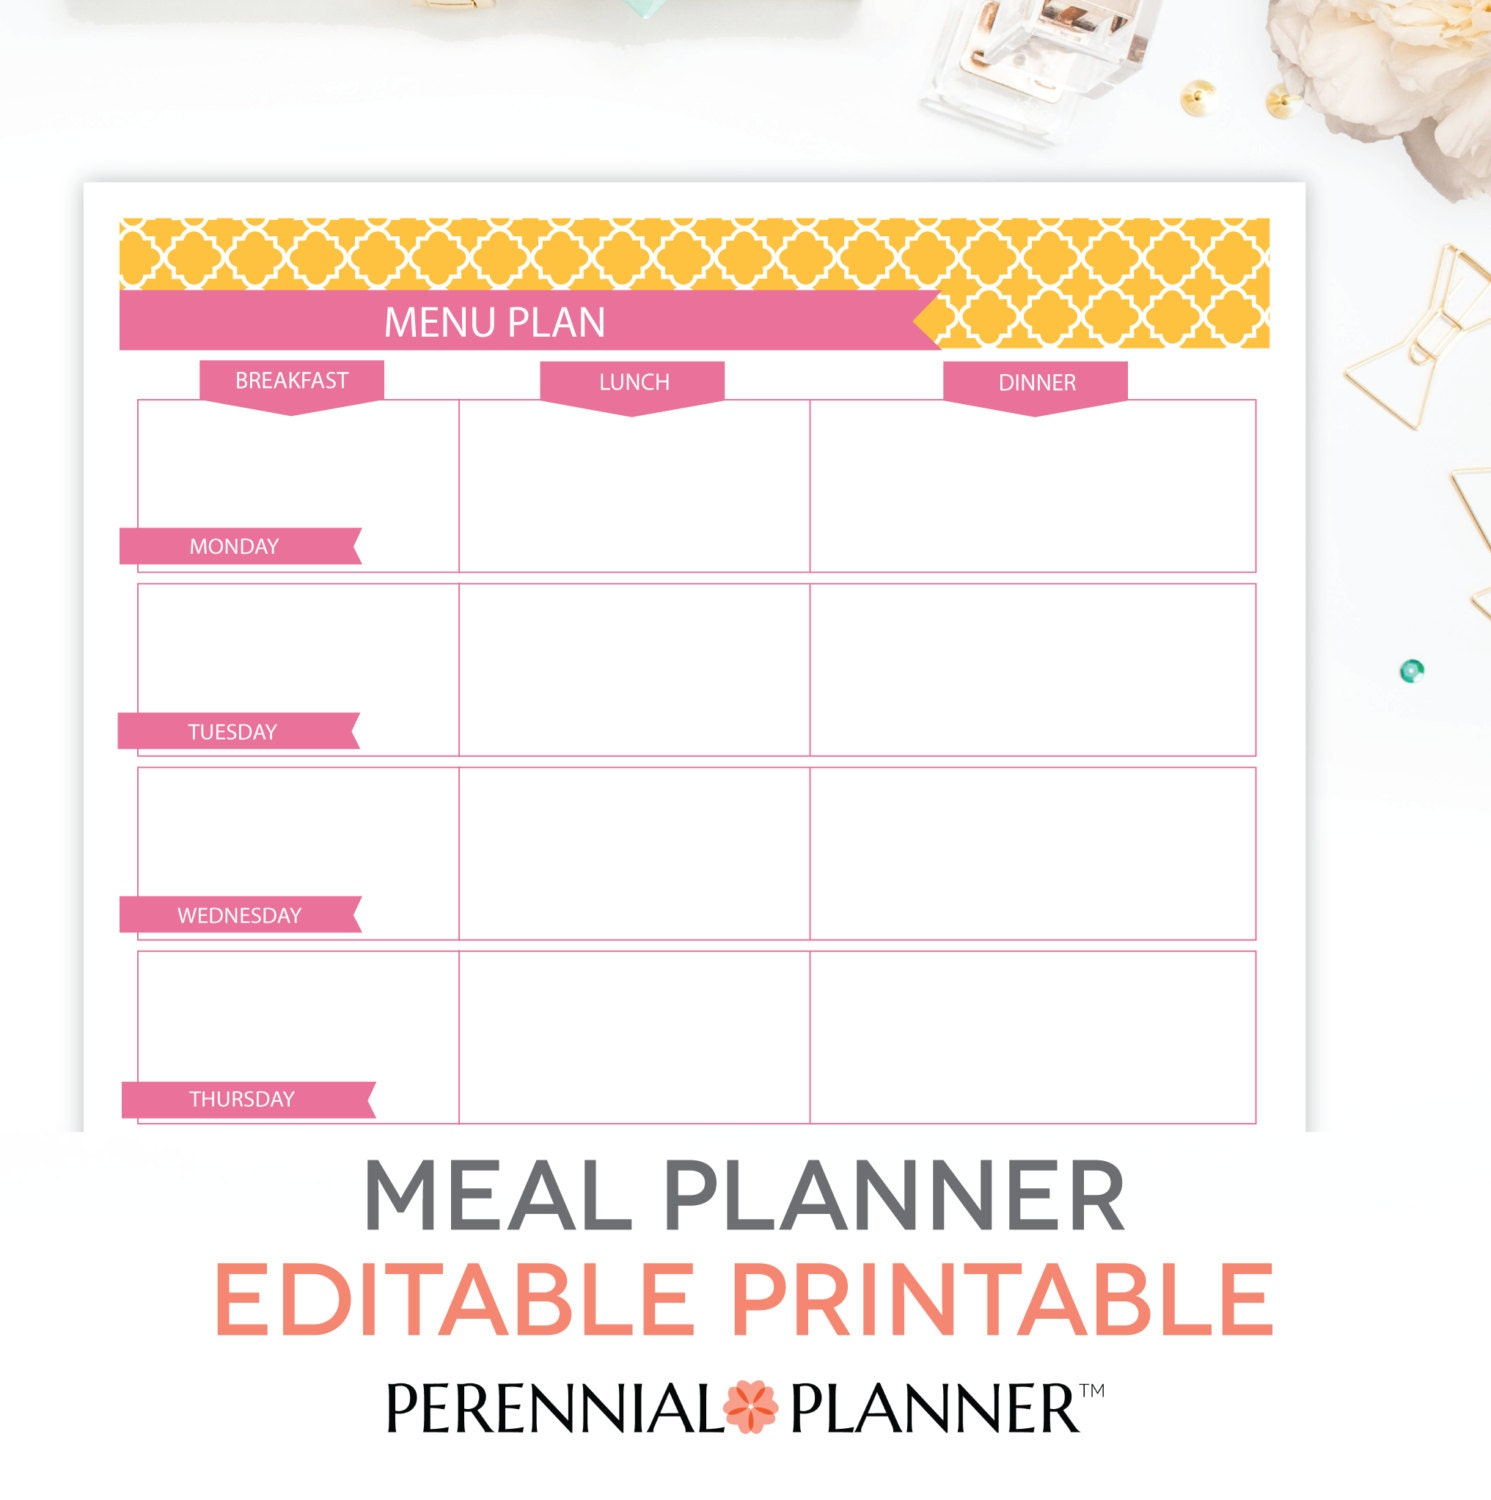 dinner menu template for home - menu plan weekly meal planning template printable editable